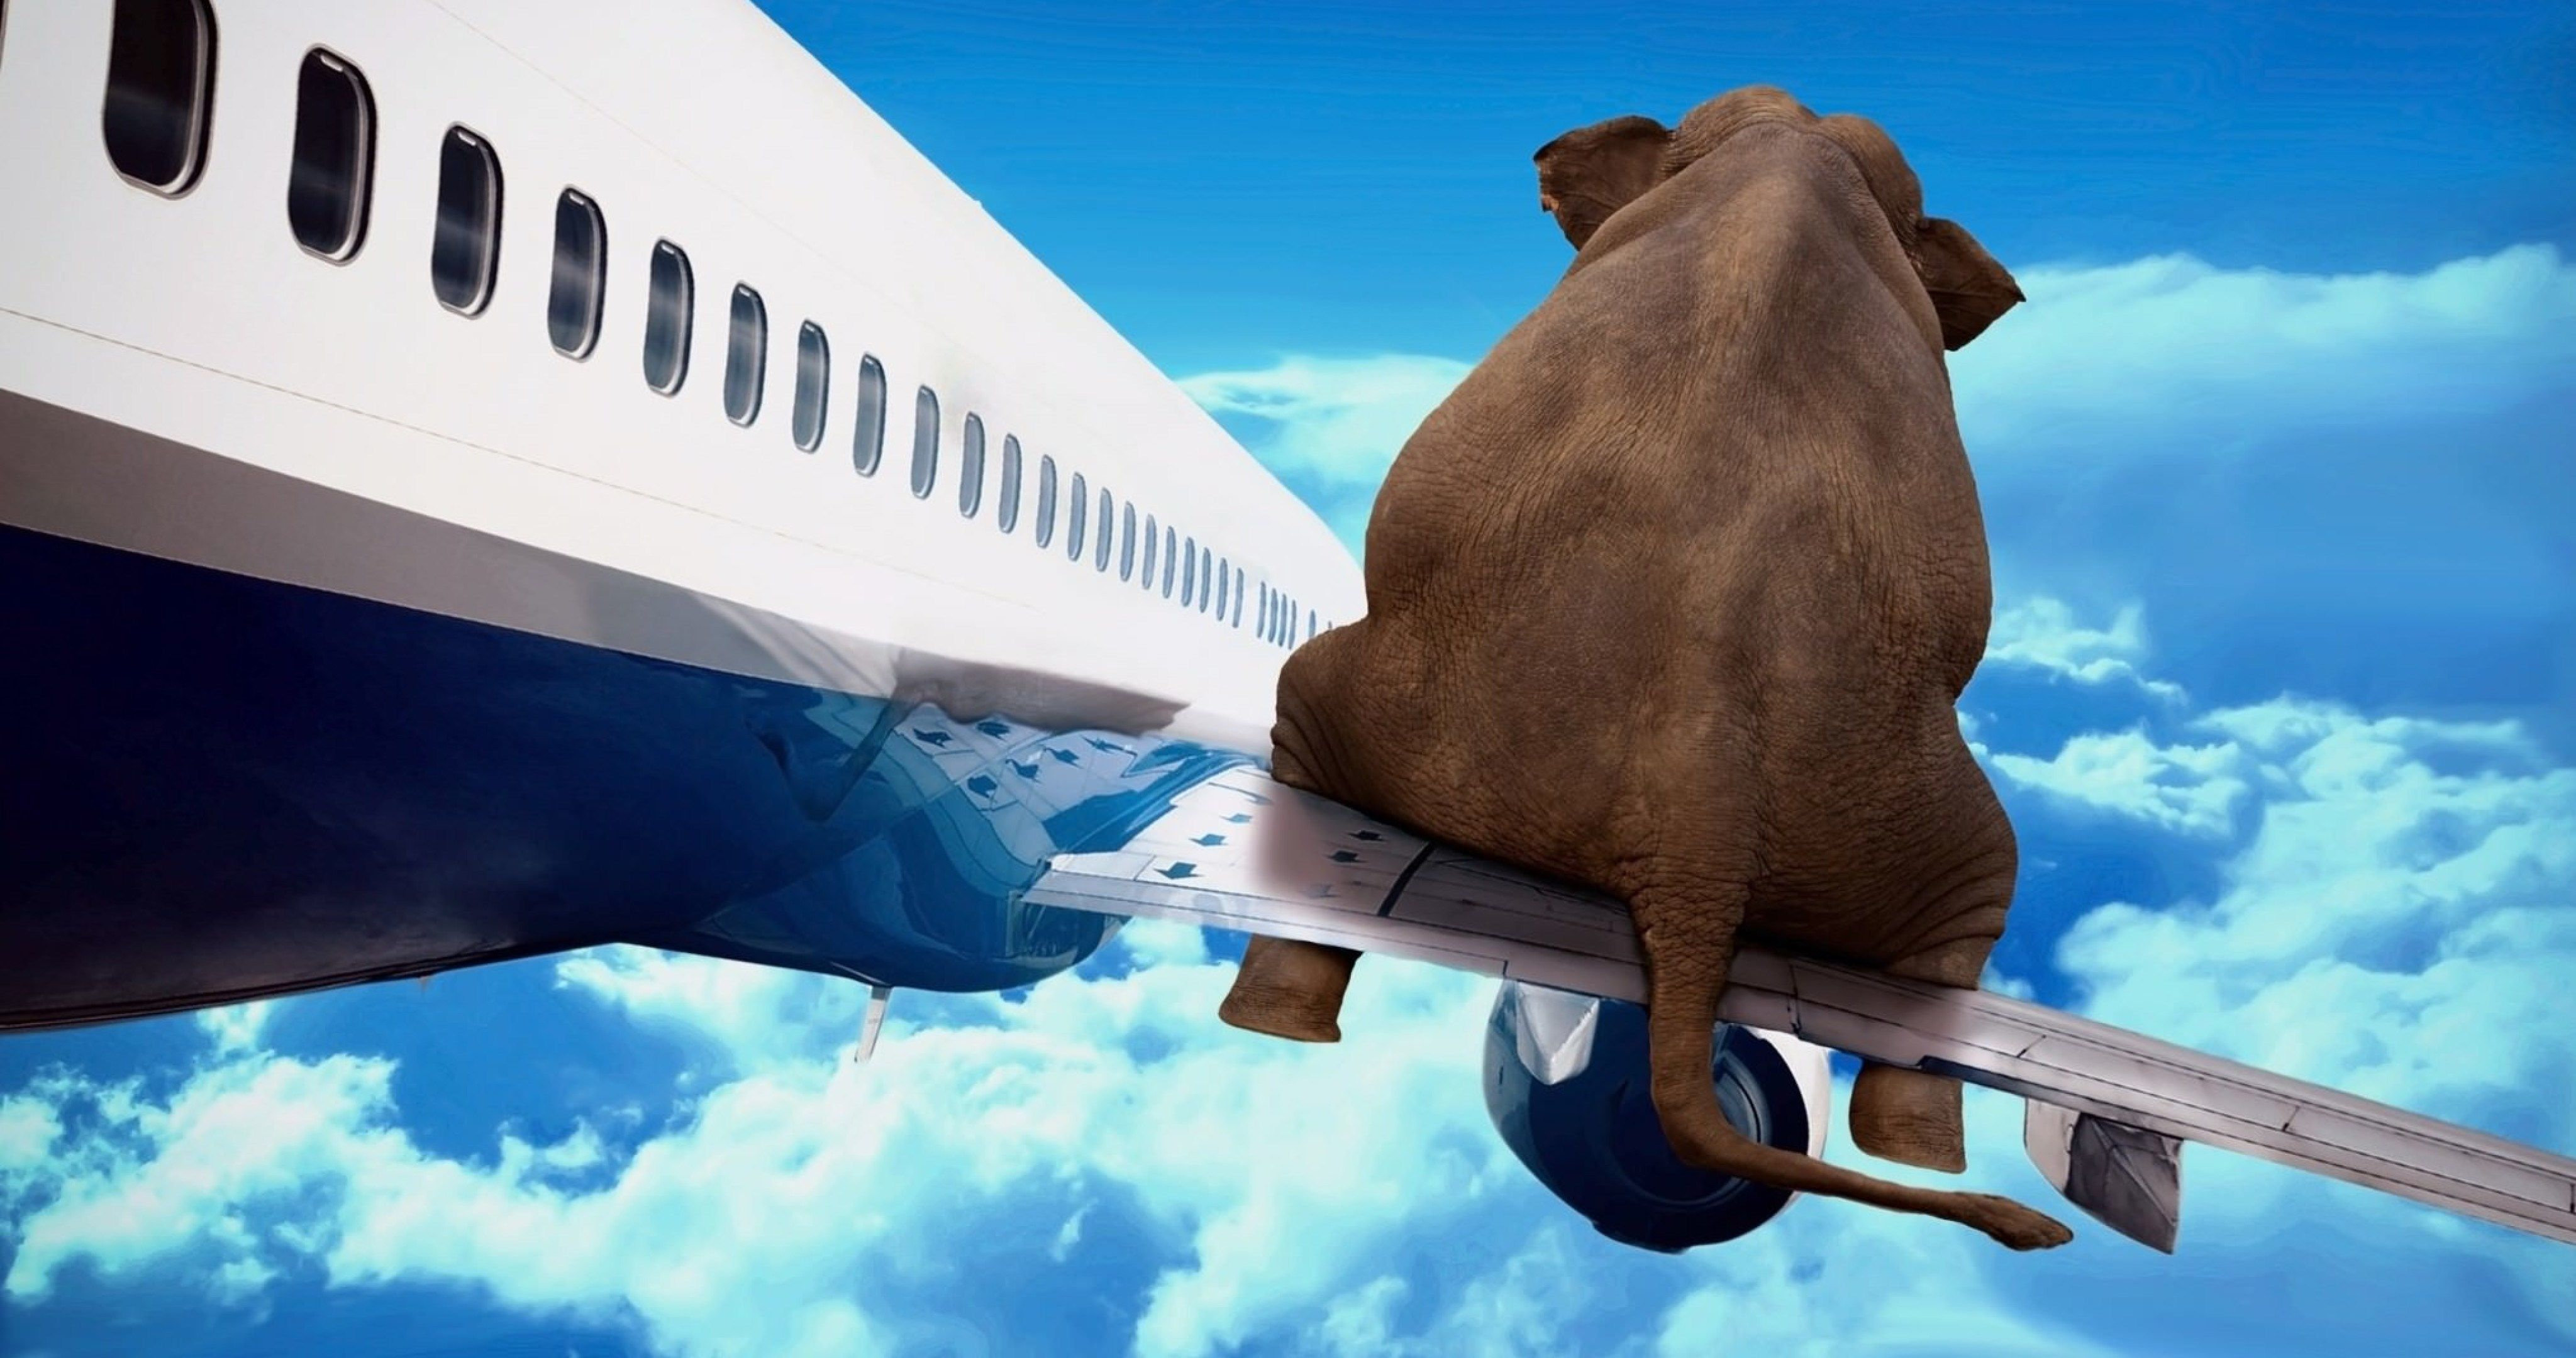 Iphone 7 Wallpapers Hd: Elephant On Airplane Wing 4k Ultra Hd Wallpaper